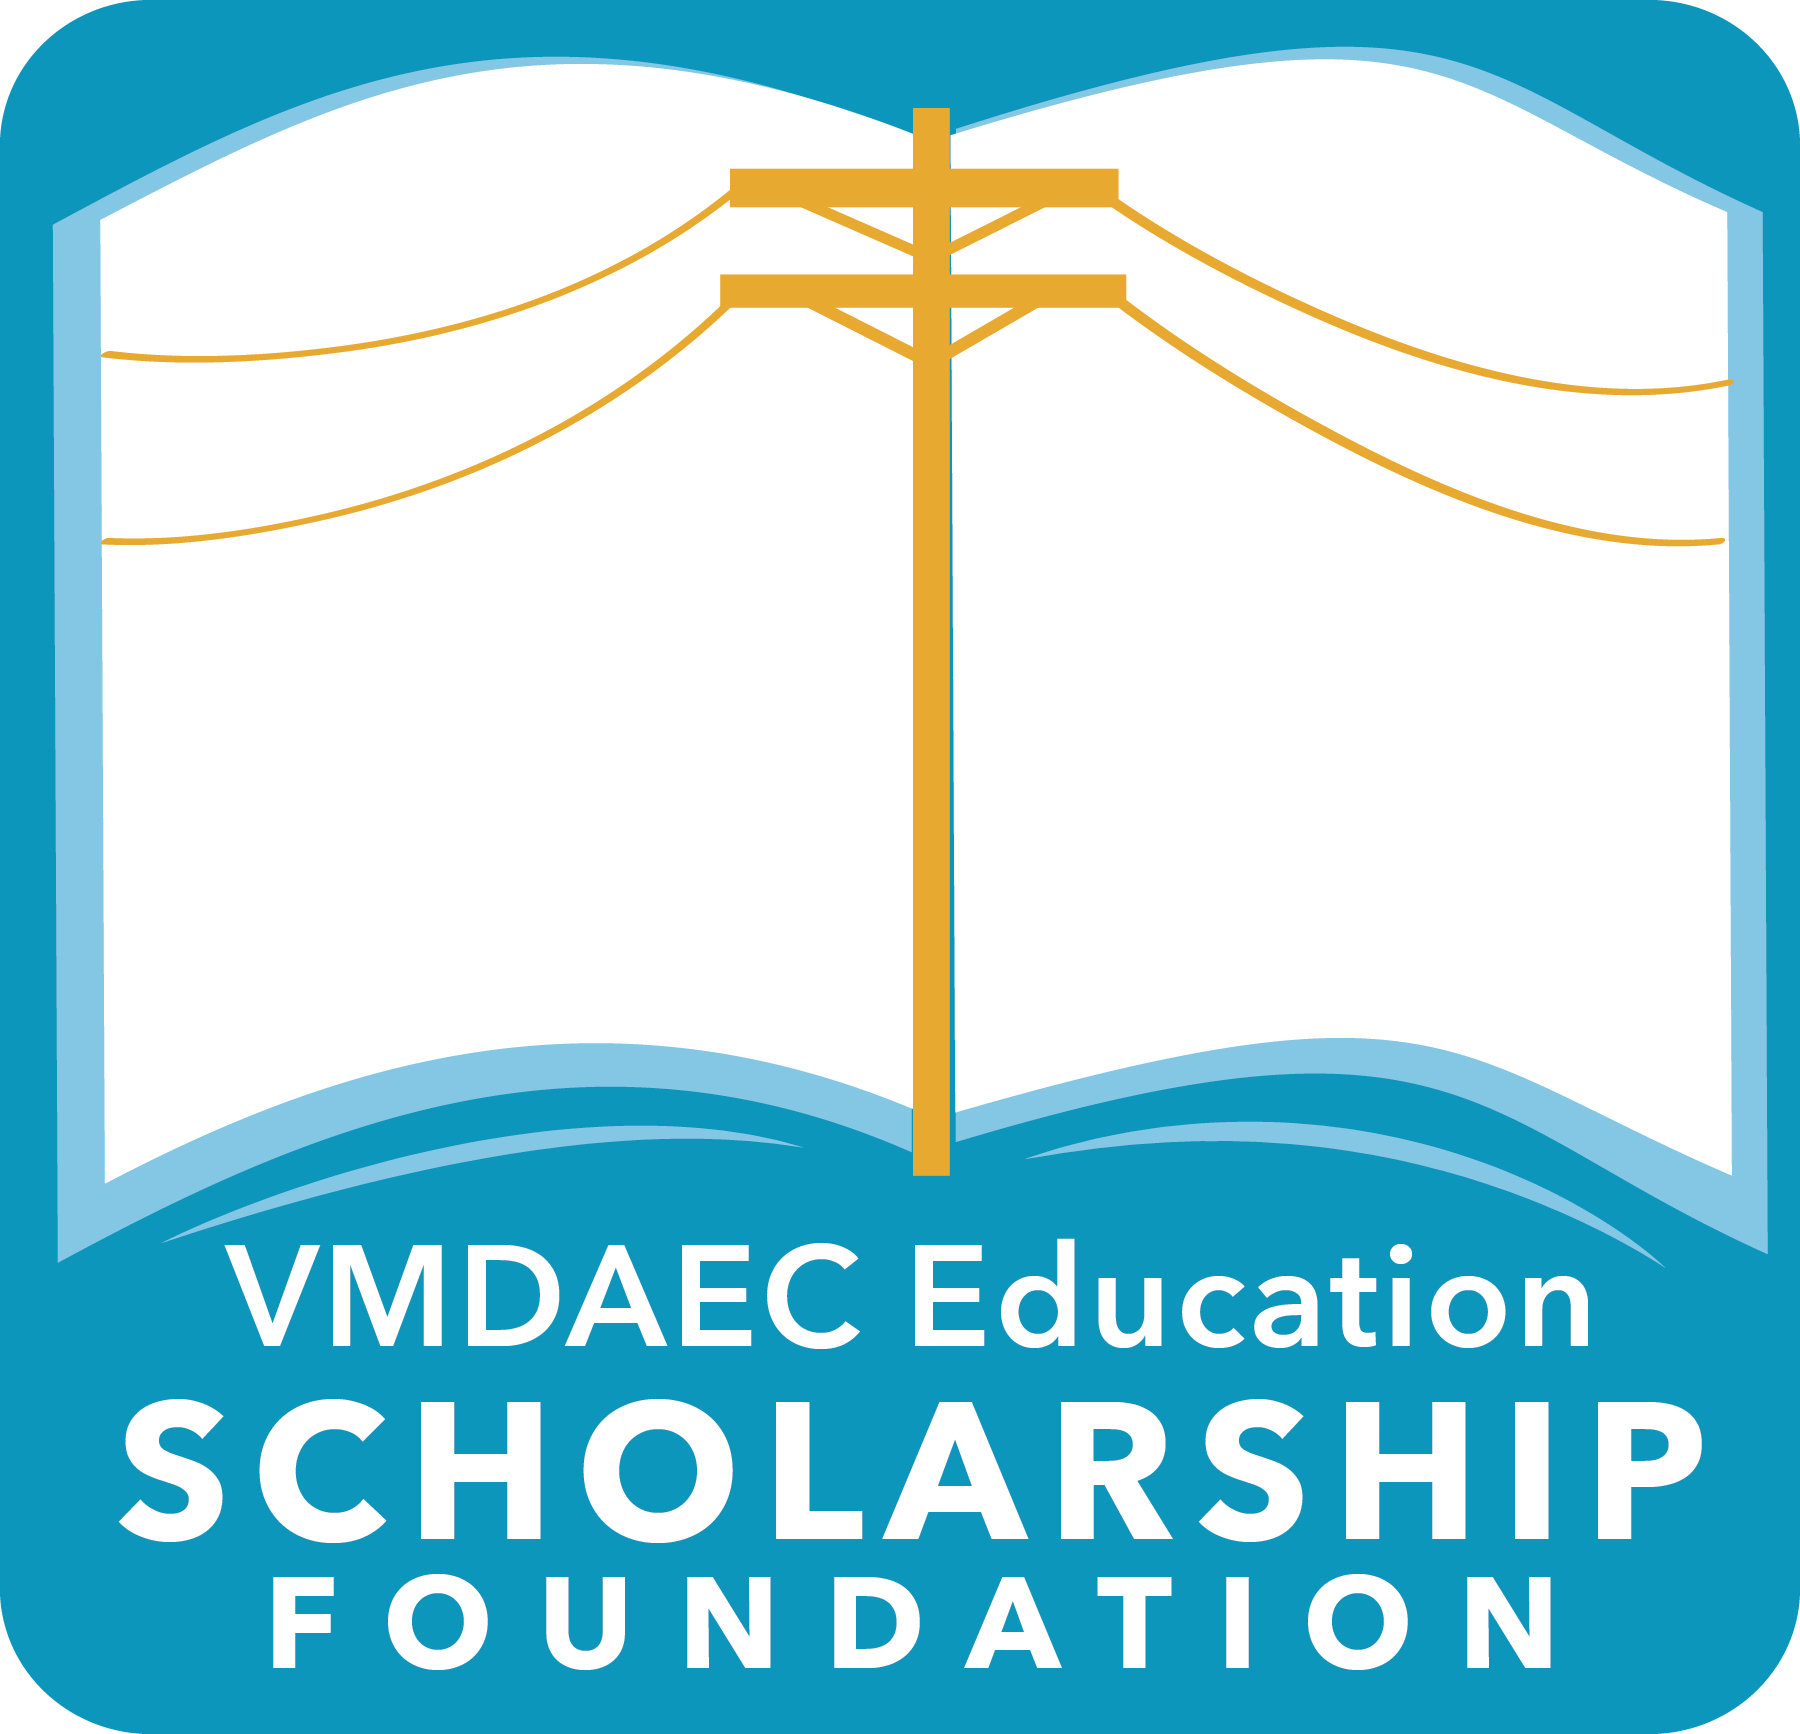 Scholarship Foundation